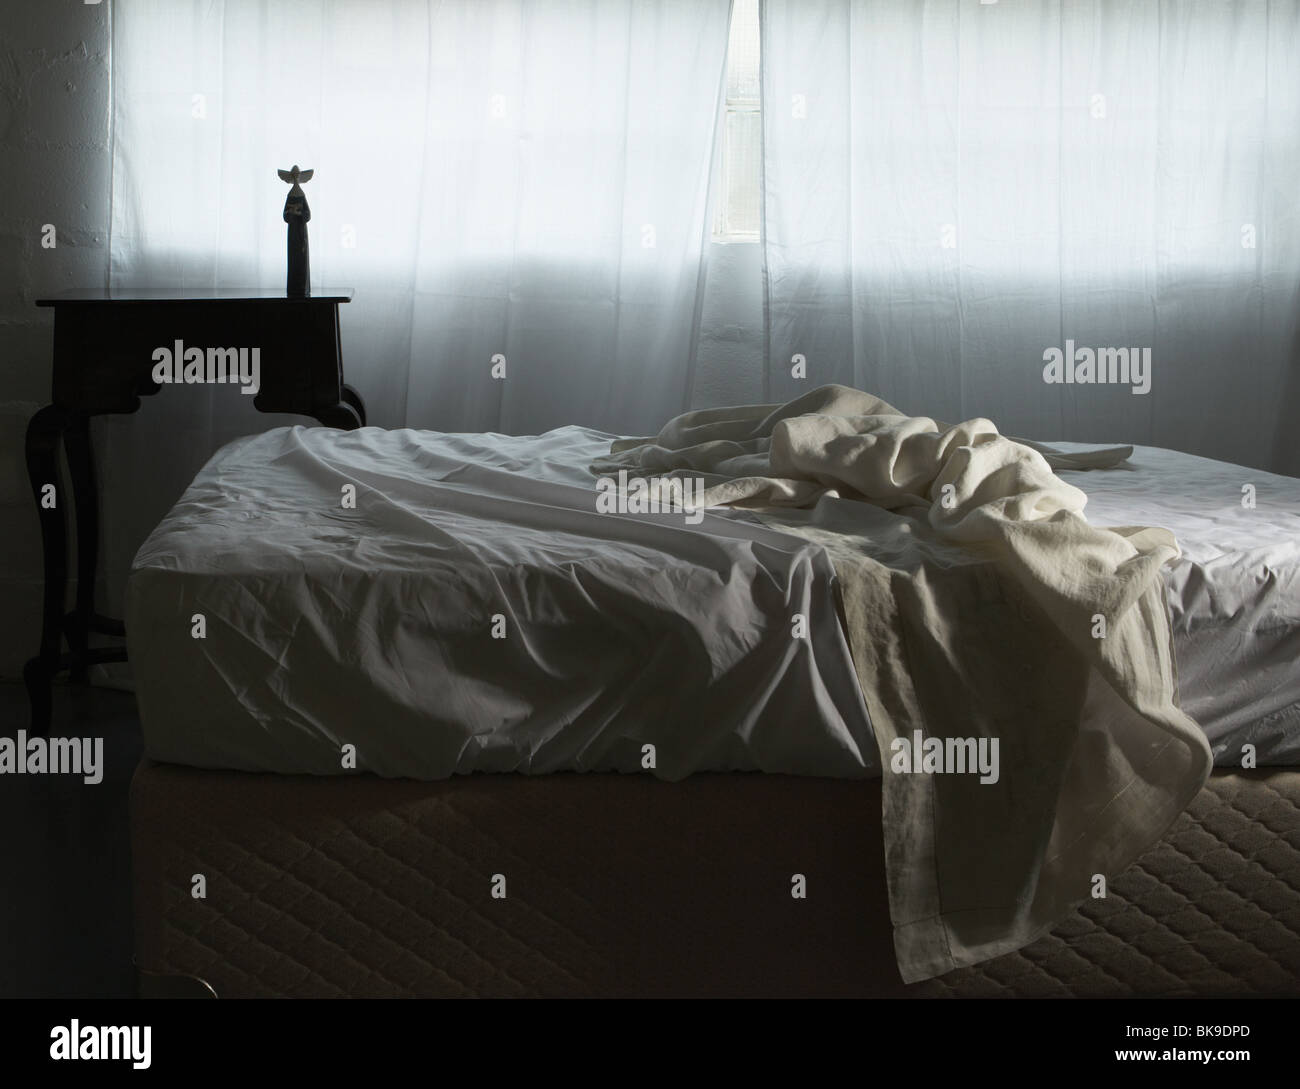 Unmade bed in morning light - Stock Image